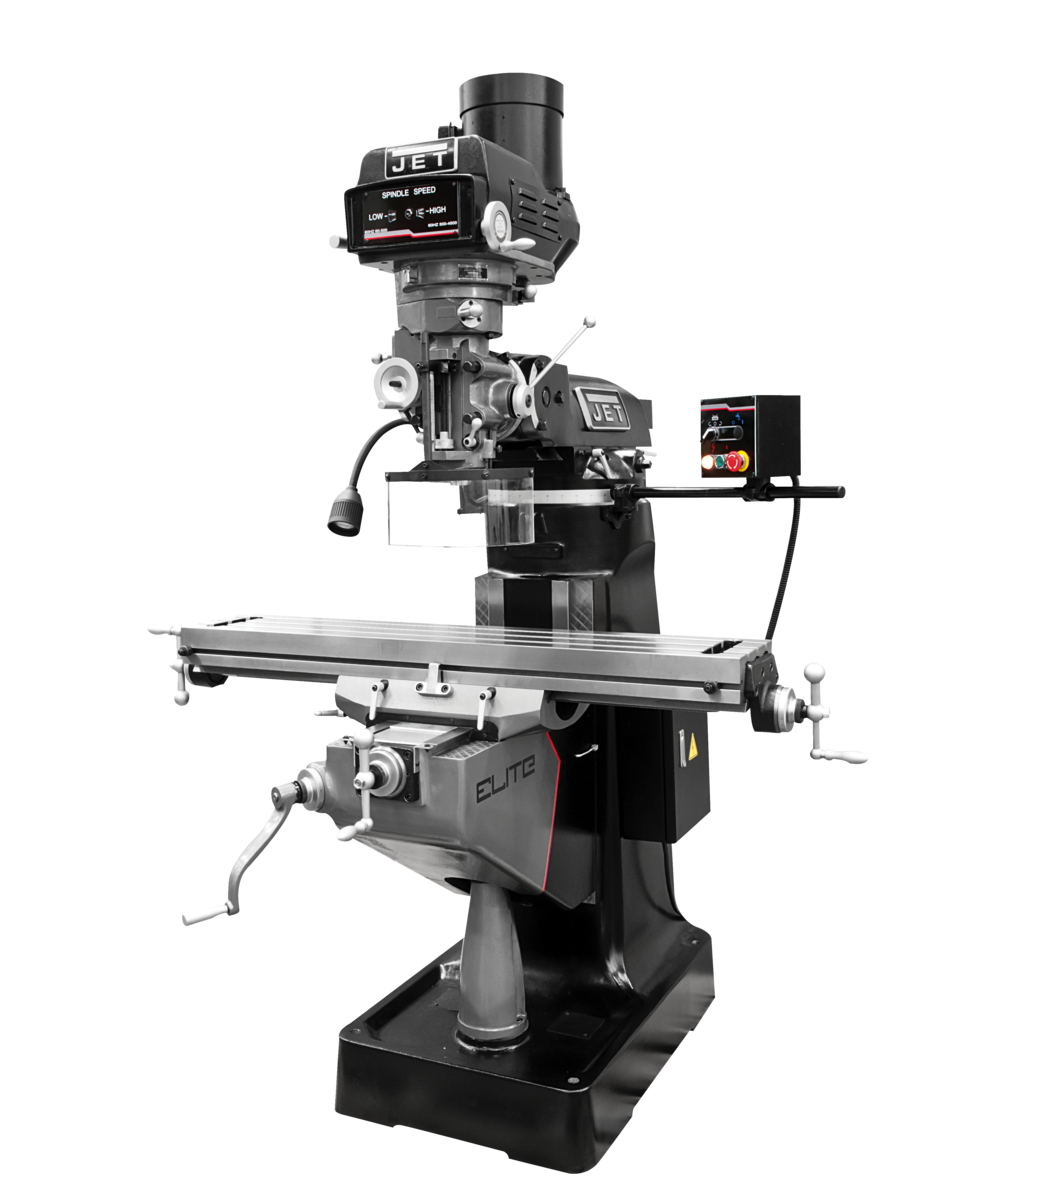 ETM-949 Mill with 2-Axis ACU-RITE 203 DRO and Servo X, Y, Z-Axis Powerfeeds and USA Air Powered Draw Bar